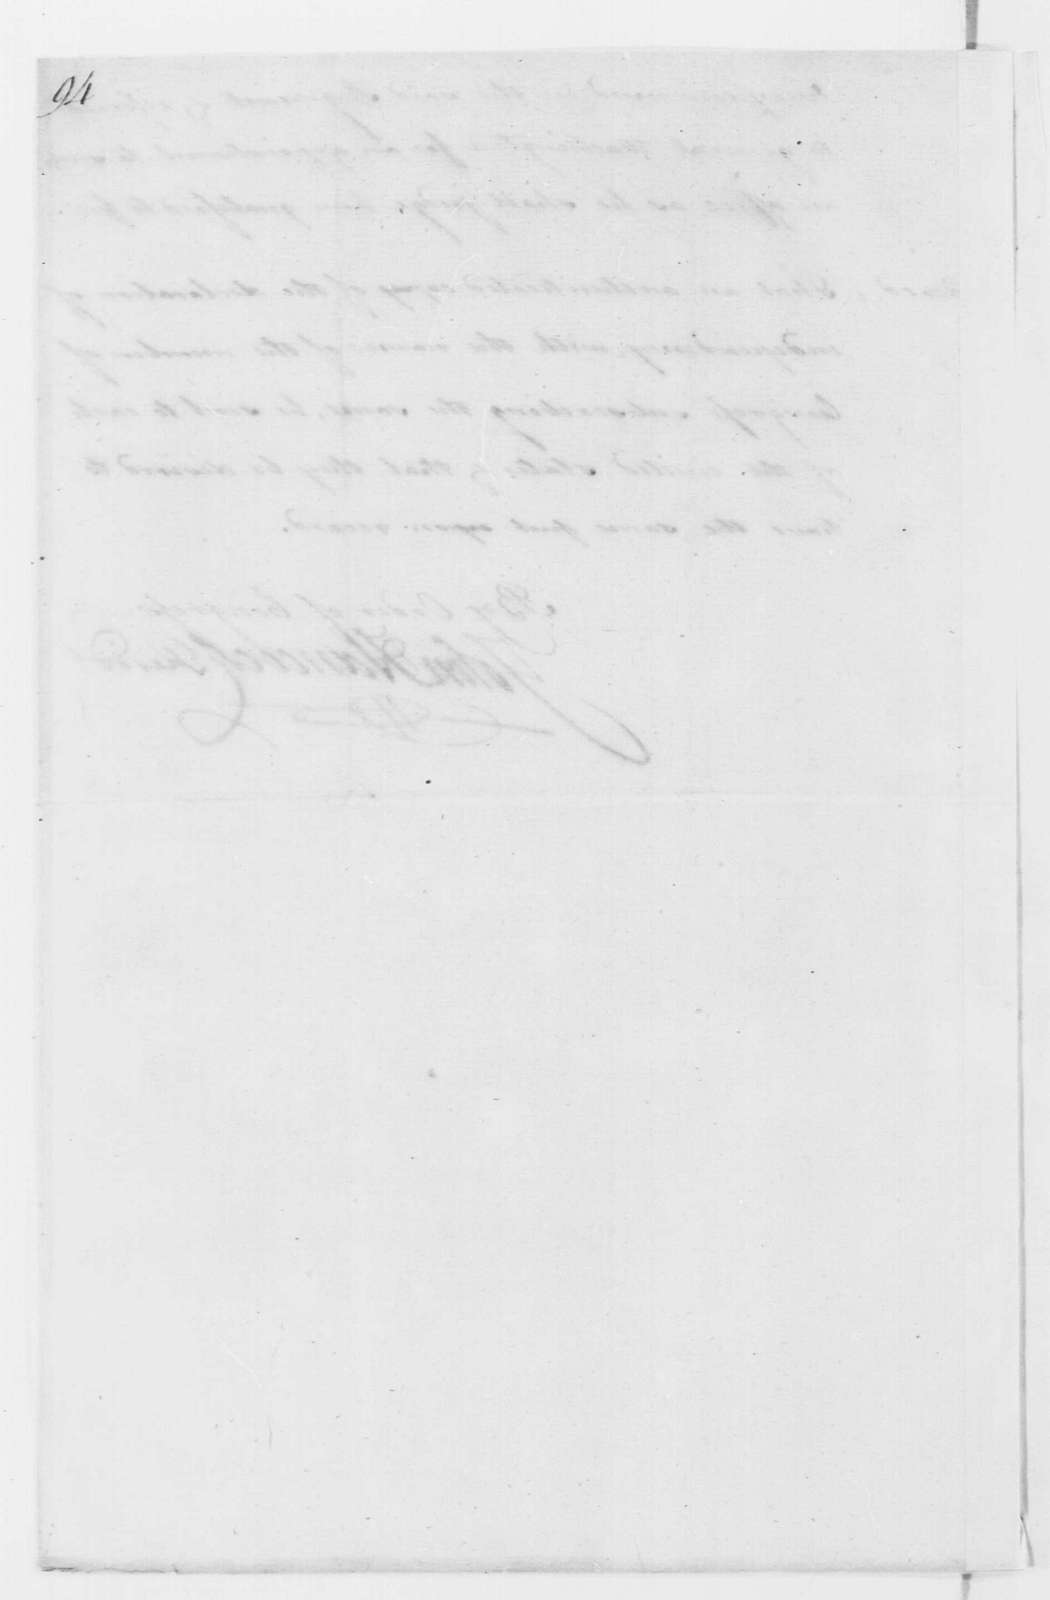 George Washington Papers, Series 4, General Correspondence: Continental Congress, January 16, 1777, Resolutions on American Prisoners